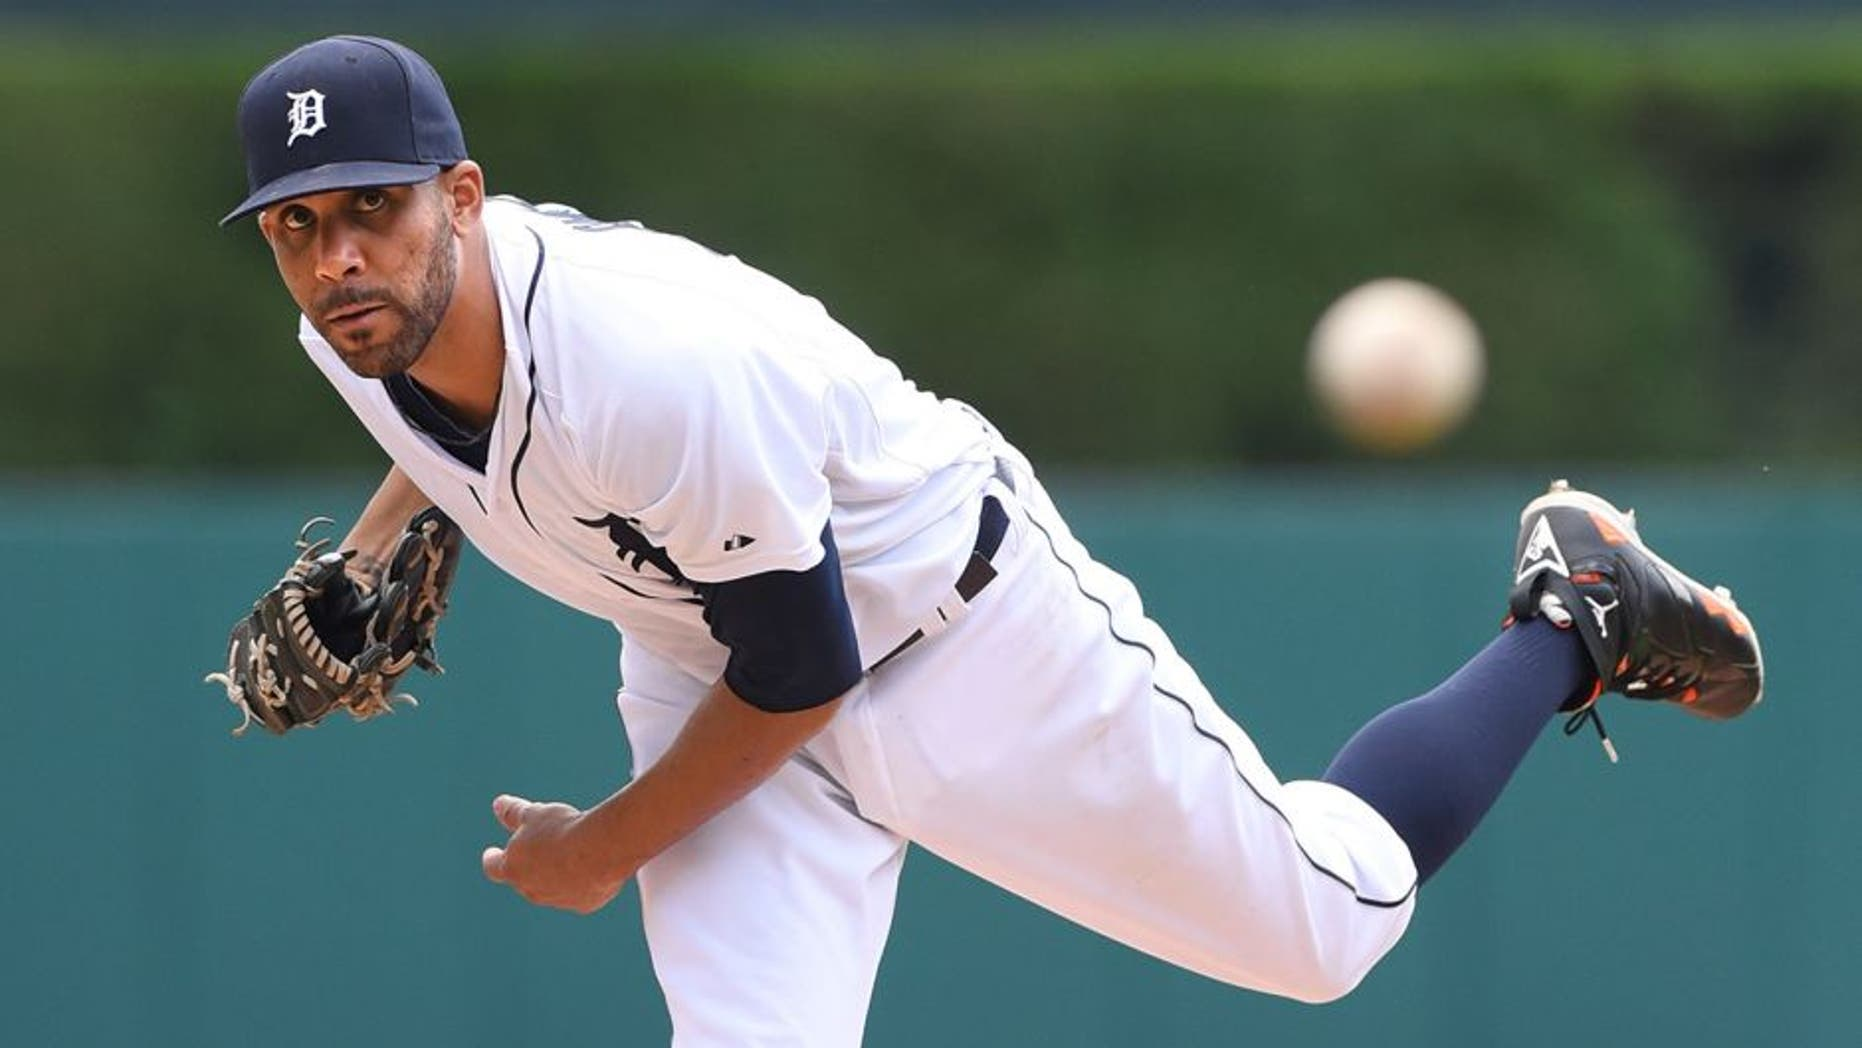 DETROIT, MI - JULY 23: David Price #14 of the Detroit Tigers throws a warm-up pitch during the game against the Seattle Mariners at Comerica Park on July 23, 2015 in Detroit, Michigan. The Mariners defeated the Tigers 3-2 in 12 innings. (Photo by Mark Cunningham/MLB Photos via Getty Images)